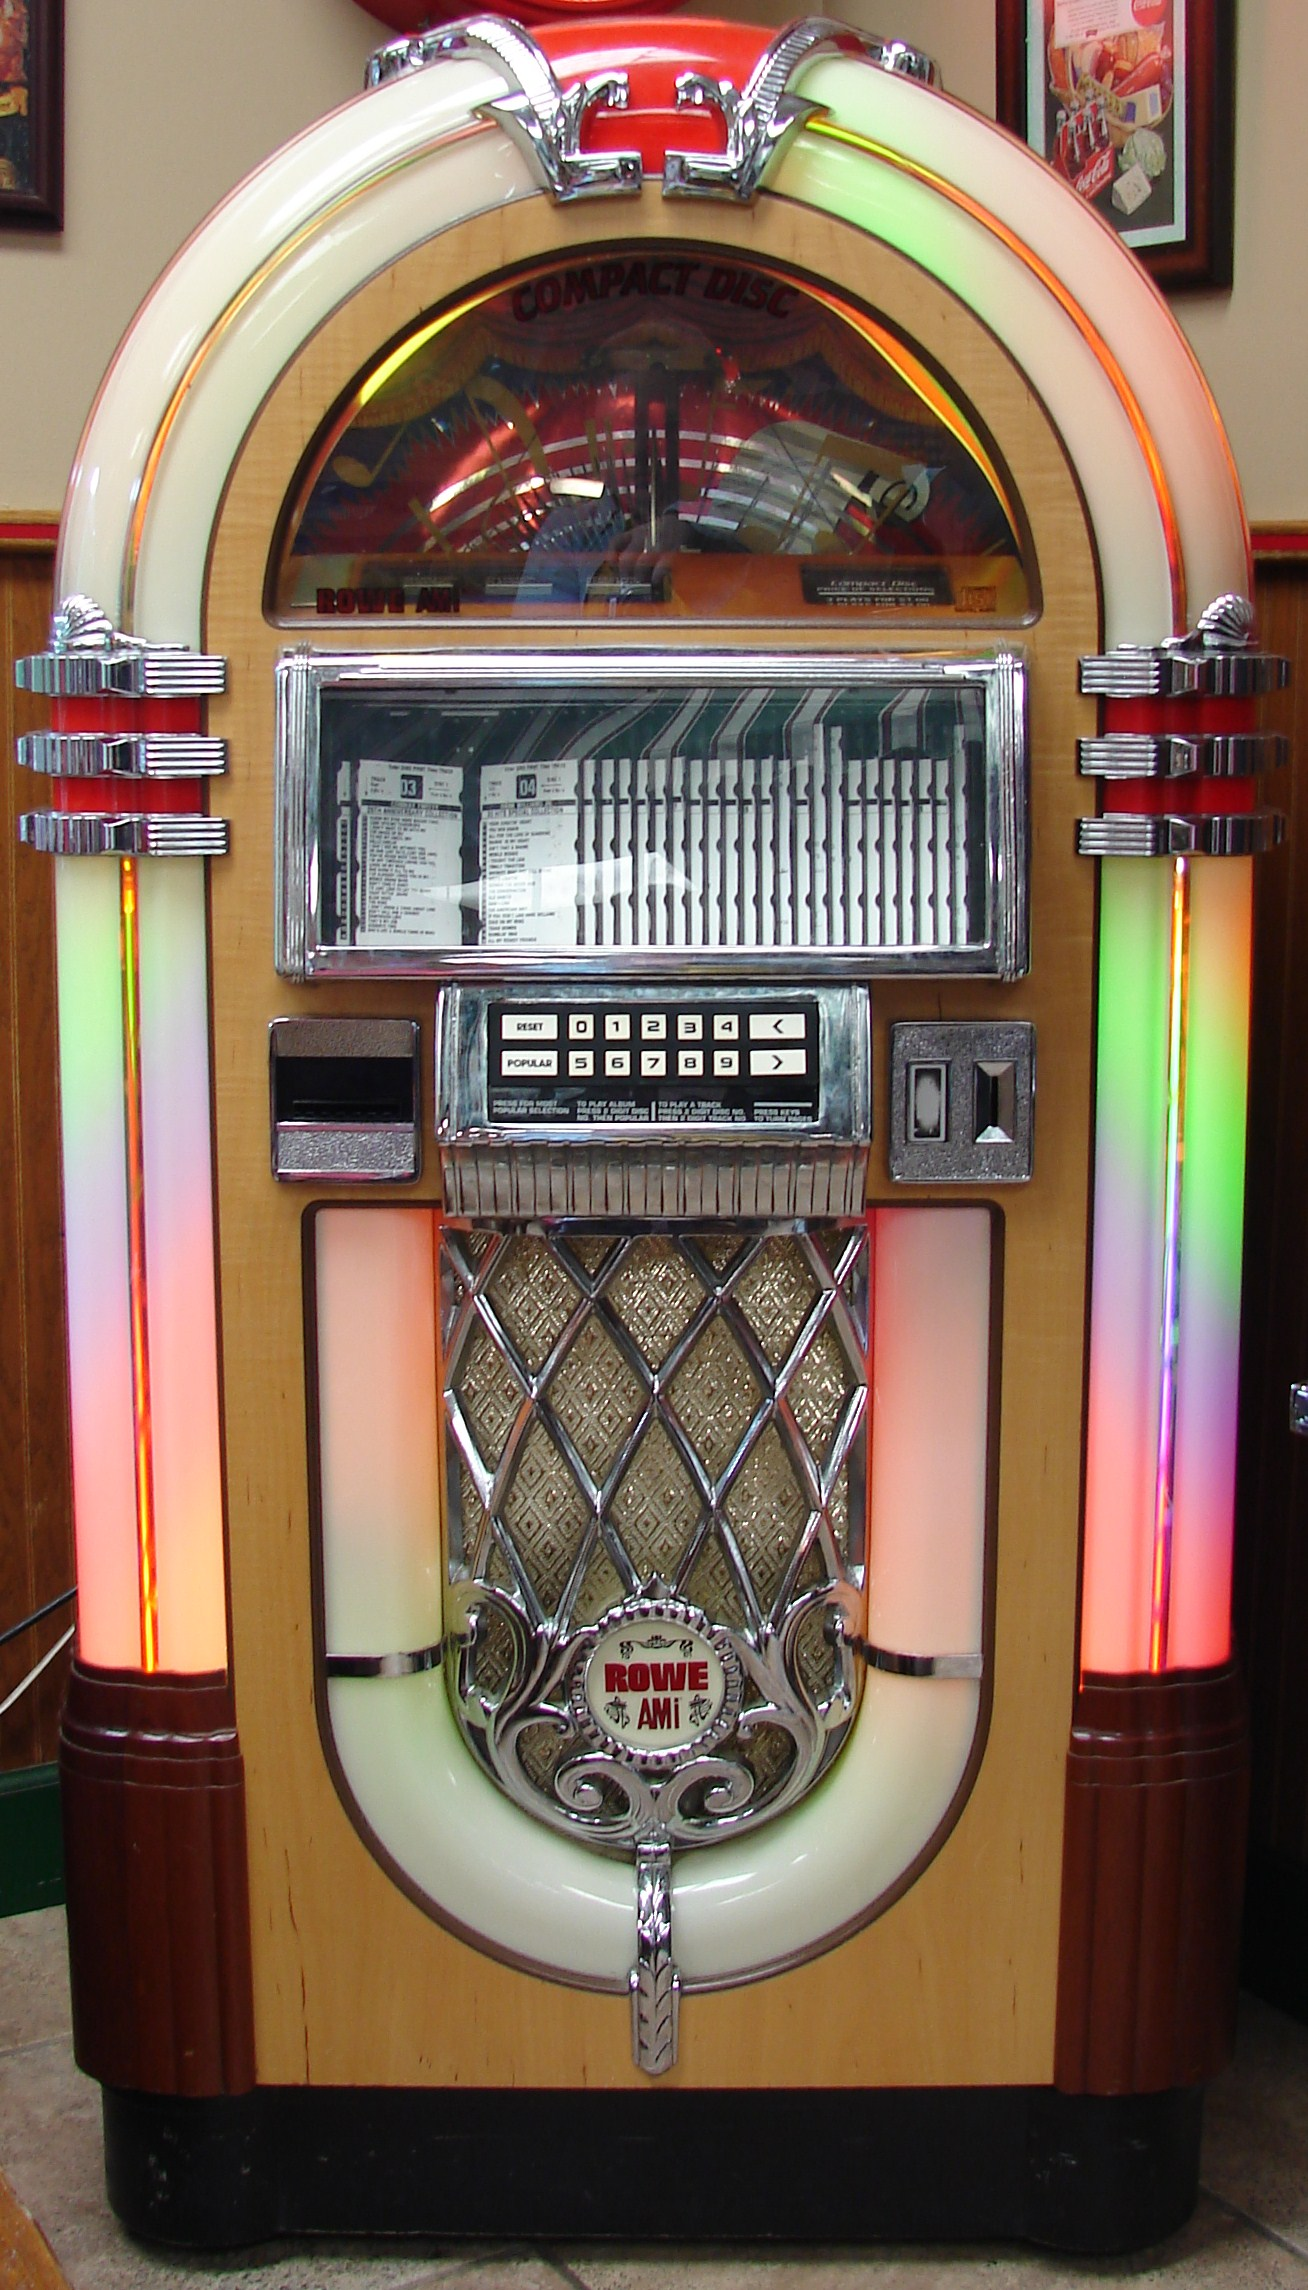 rowe_ami_jukebox_by_fantasystock.jpg